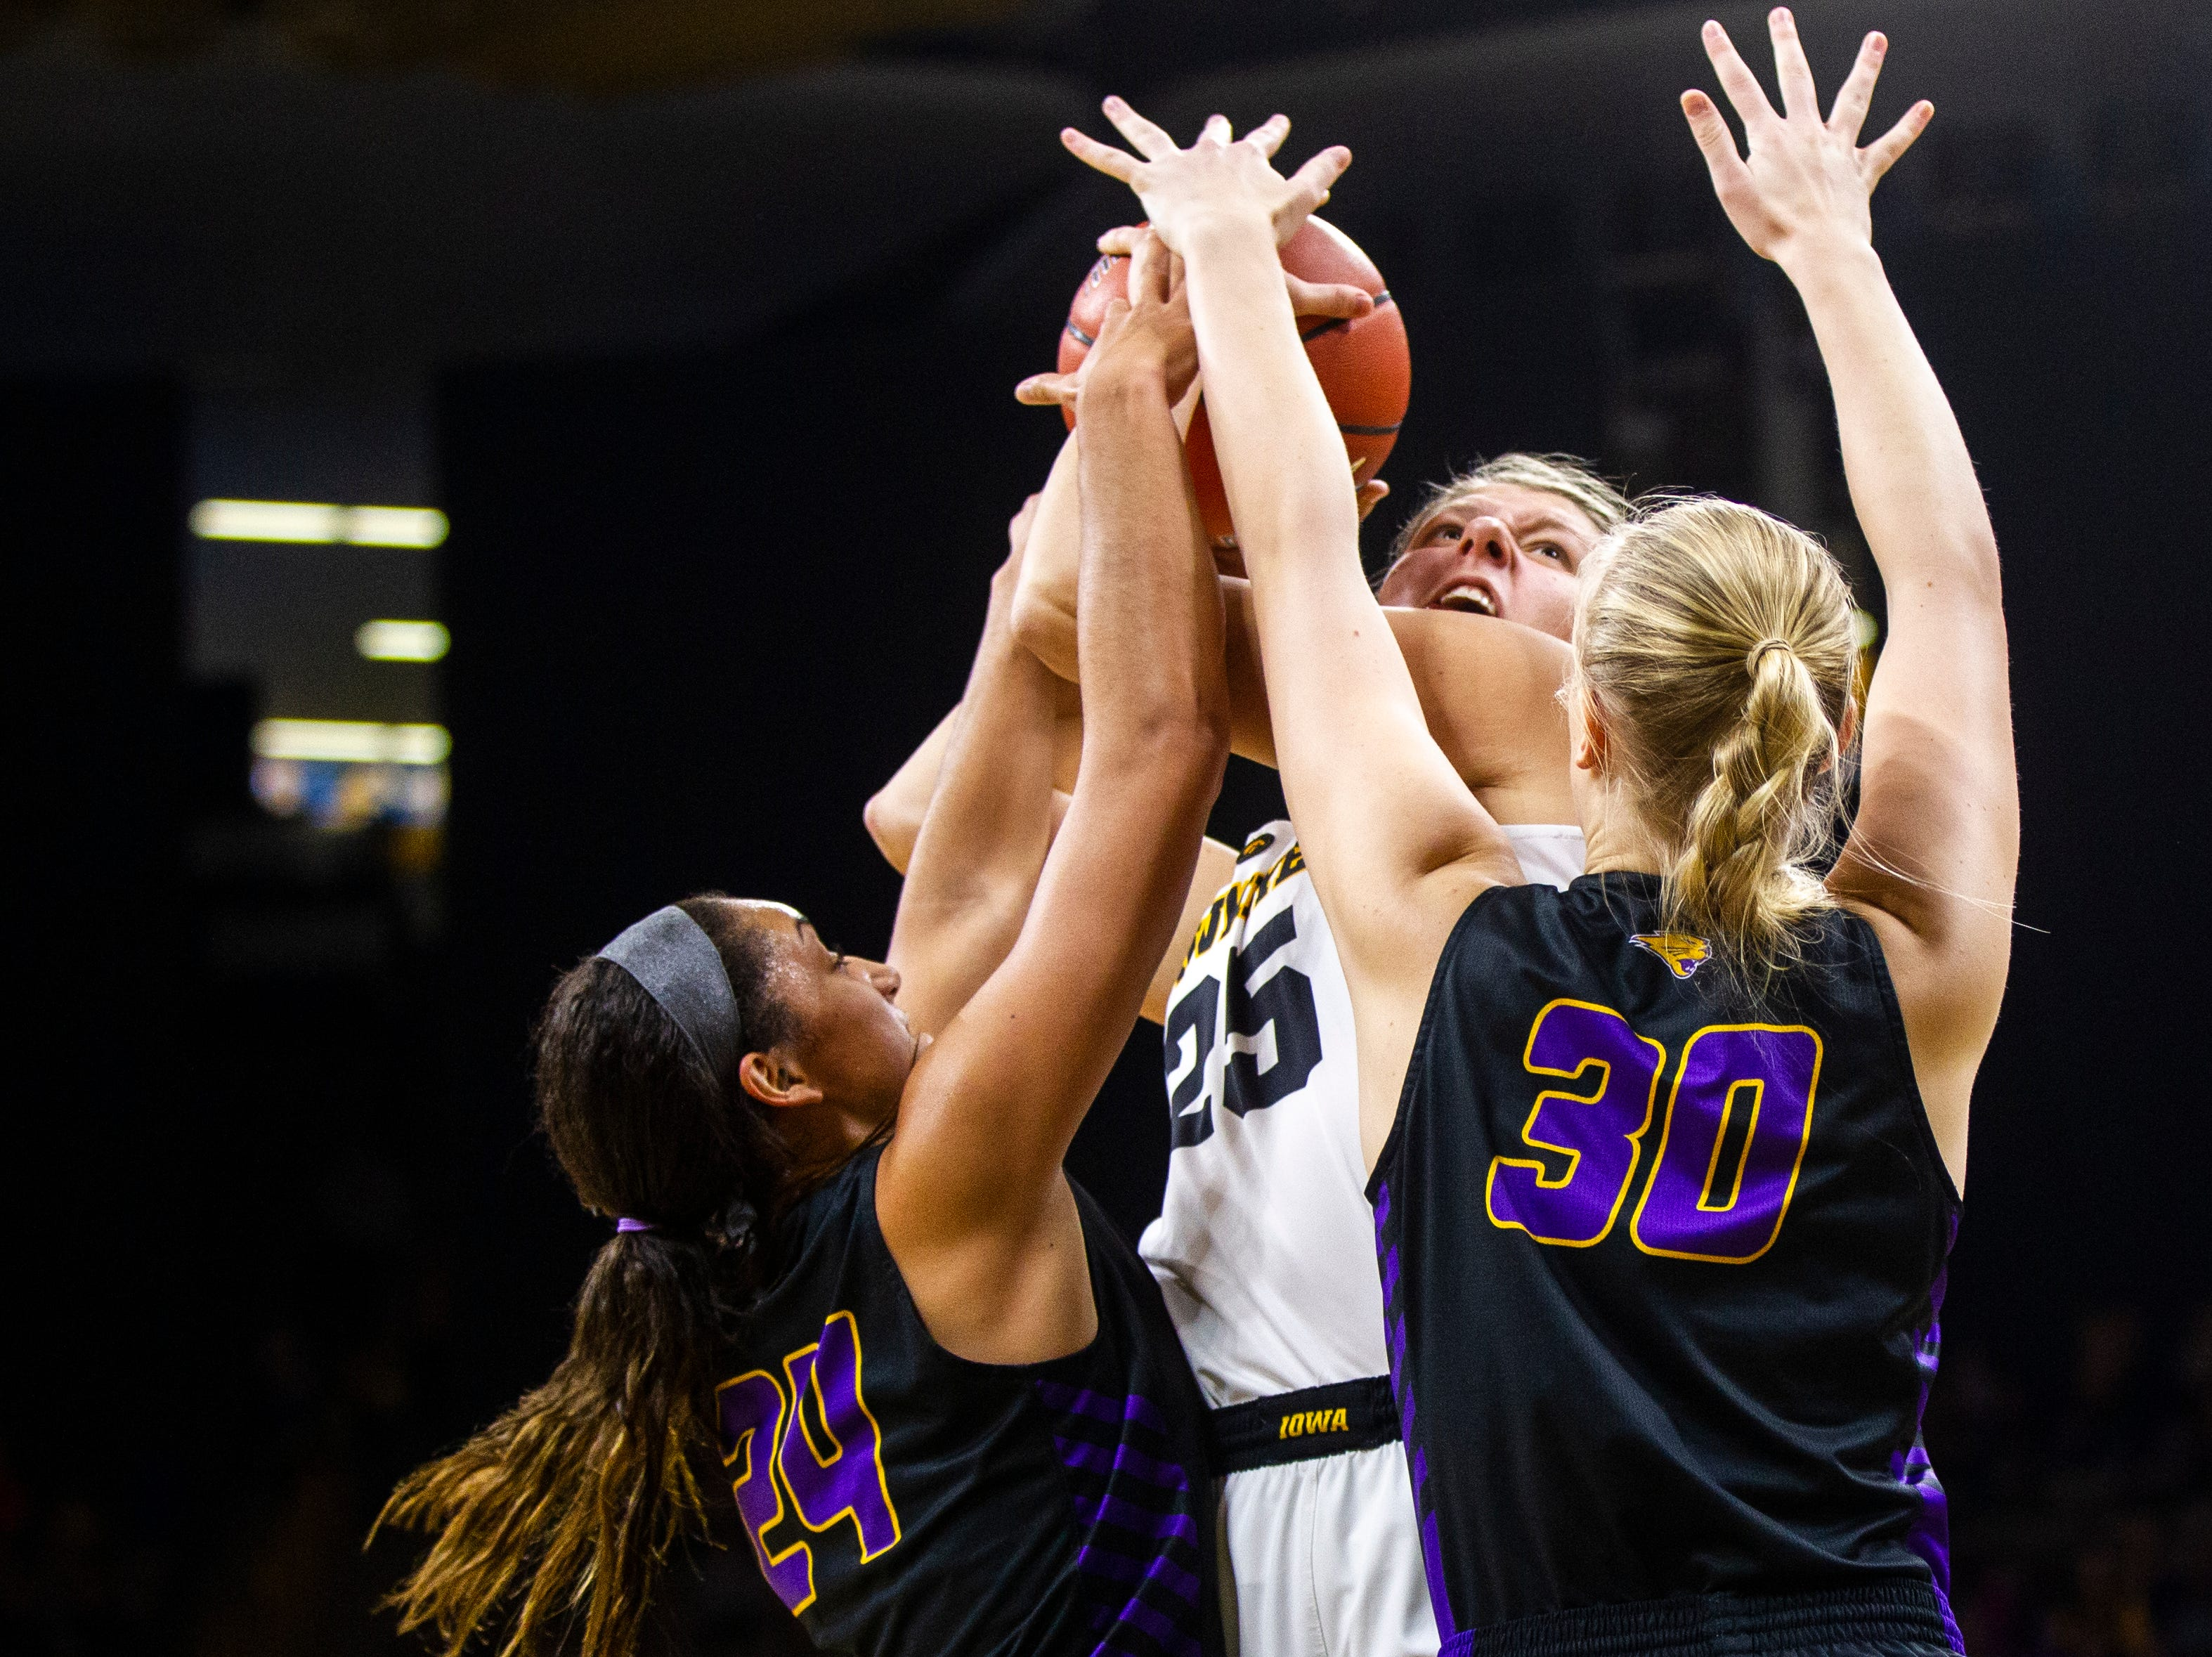 Iowa's Monika Czinano (25) gets defended by Northern Iowa guard Mikaela Morgan (24) and center Cynthia Wolf (30) during a NCAA women's basketball game on Sunday, Dec. 16, 2018, at Carver-Hawkeye Arena in Iowa City.